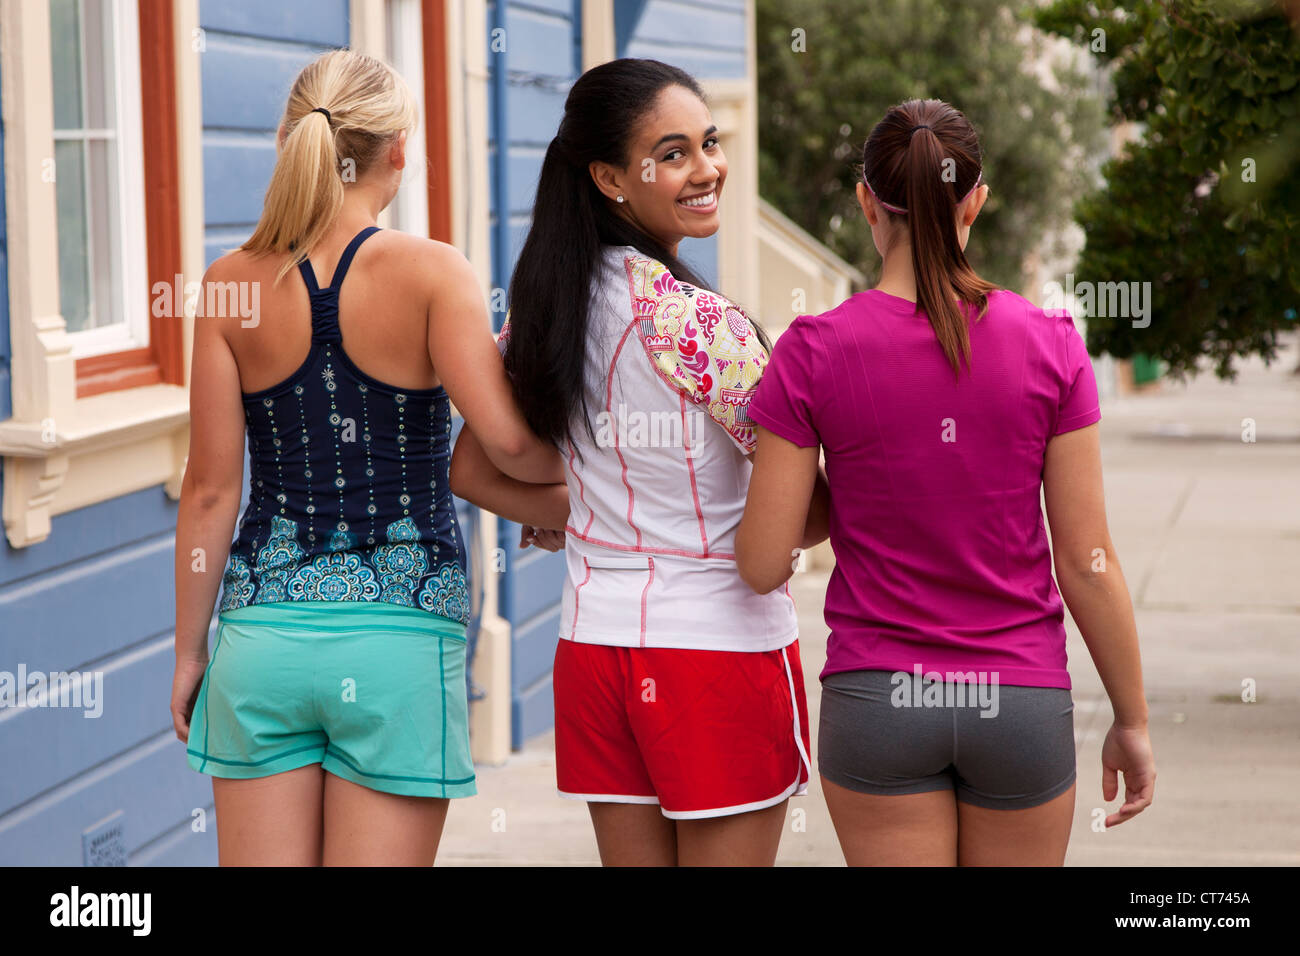 Three girls in fitness clothing are walking down the street. - Stock Image